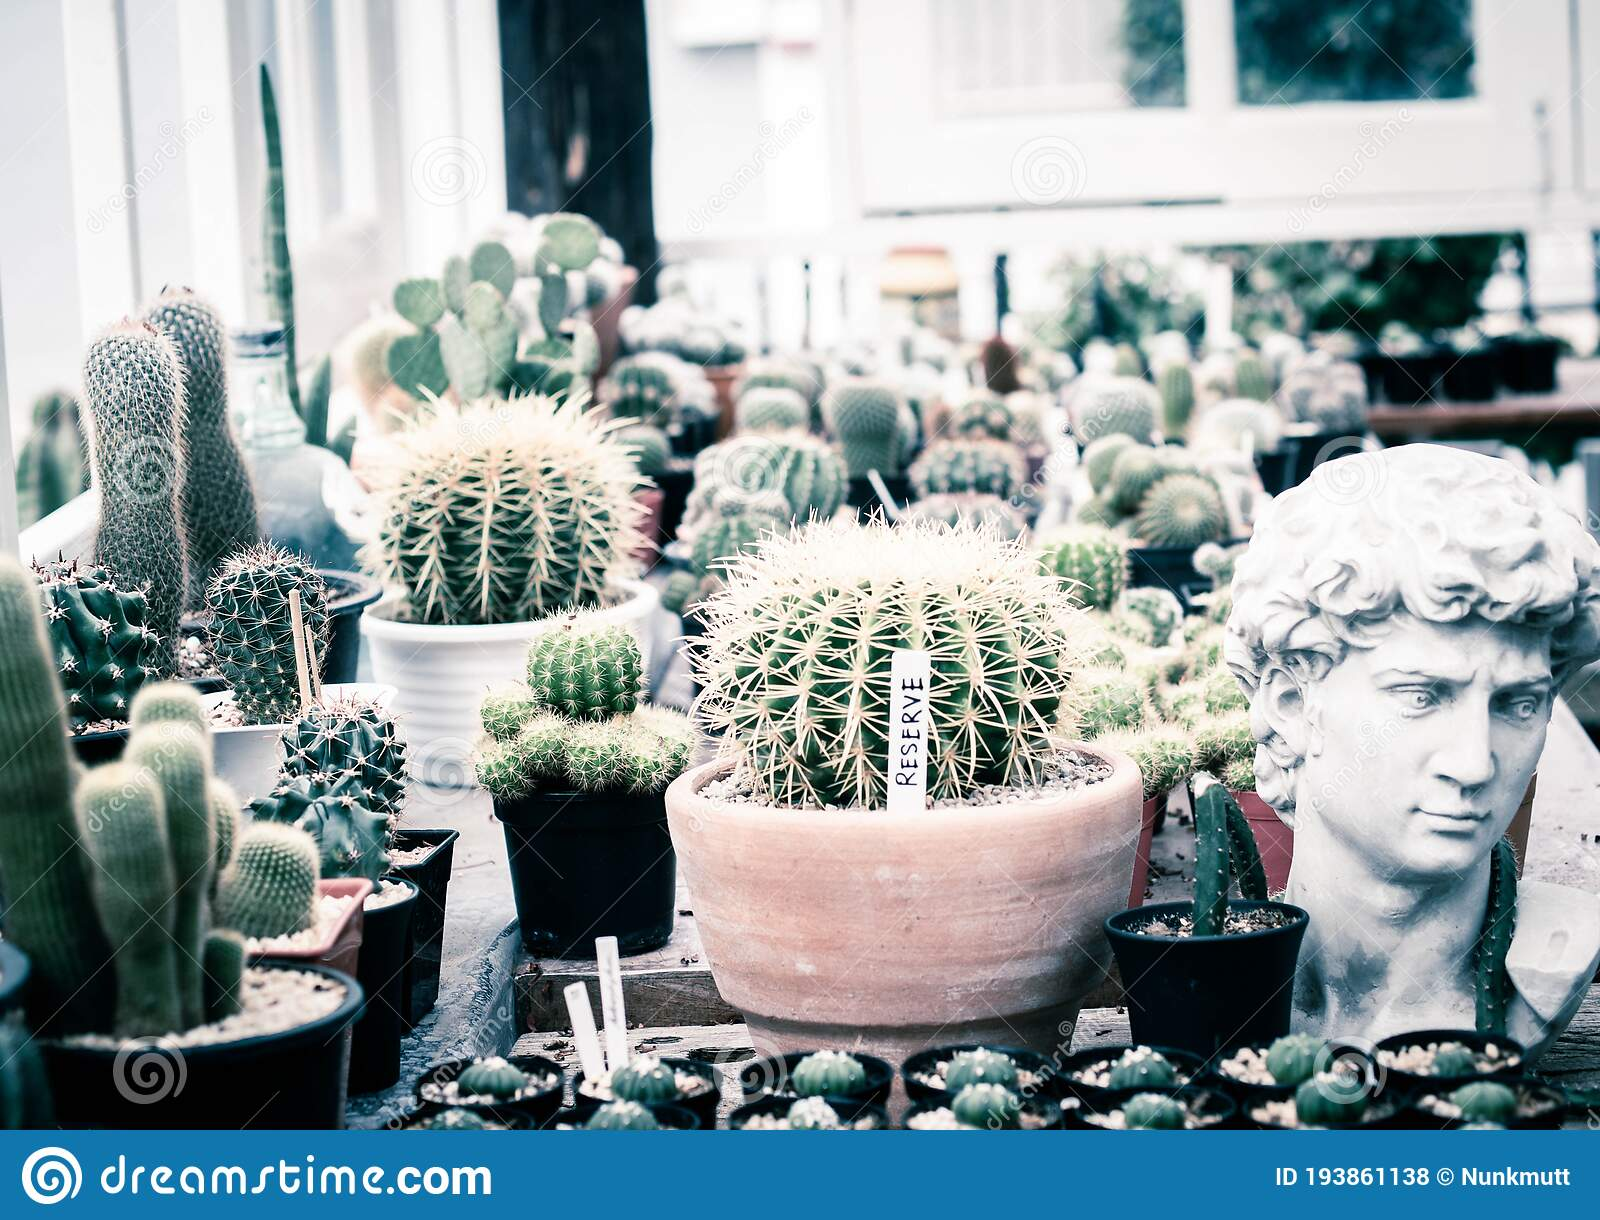 Potted Cactus Plants Next White Wooden Window Interior Inspiration Indoor Window Garden Small Succulent Cactus Pot Plants Stock Photo Image Of Arrangement Celebration 193861138